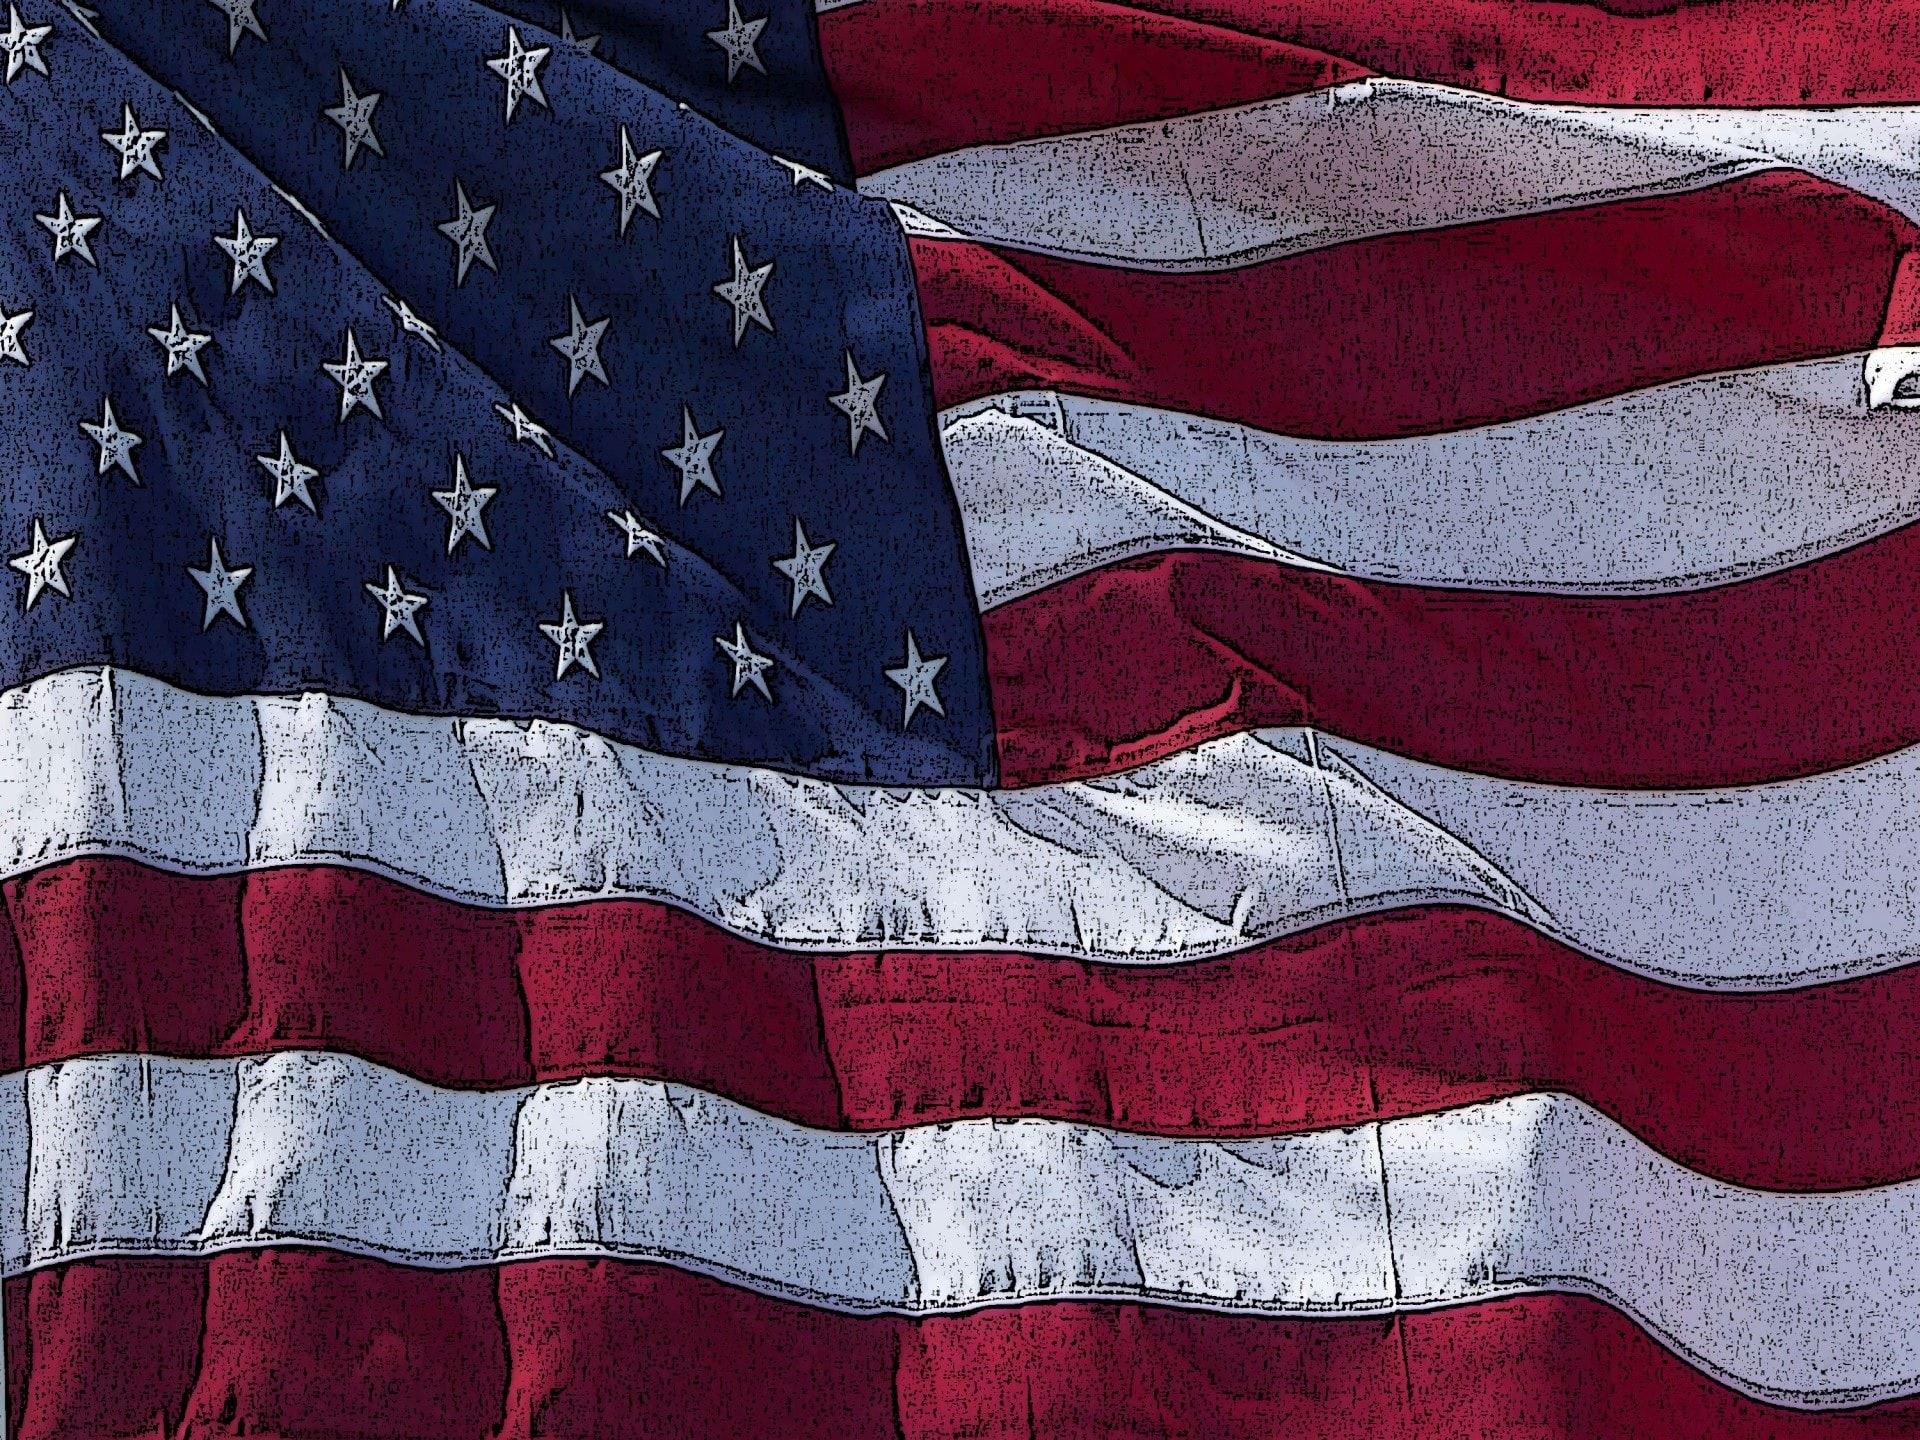 Hd wallpaper usa flag - Cool American Flag Iphone Wallpapers